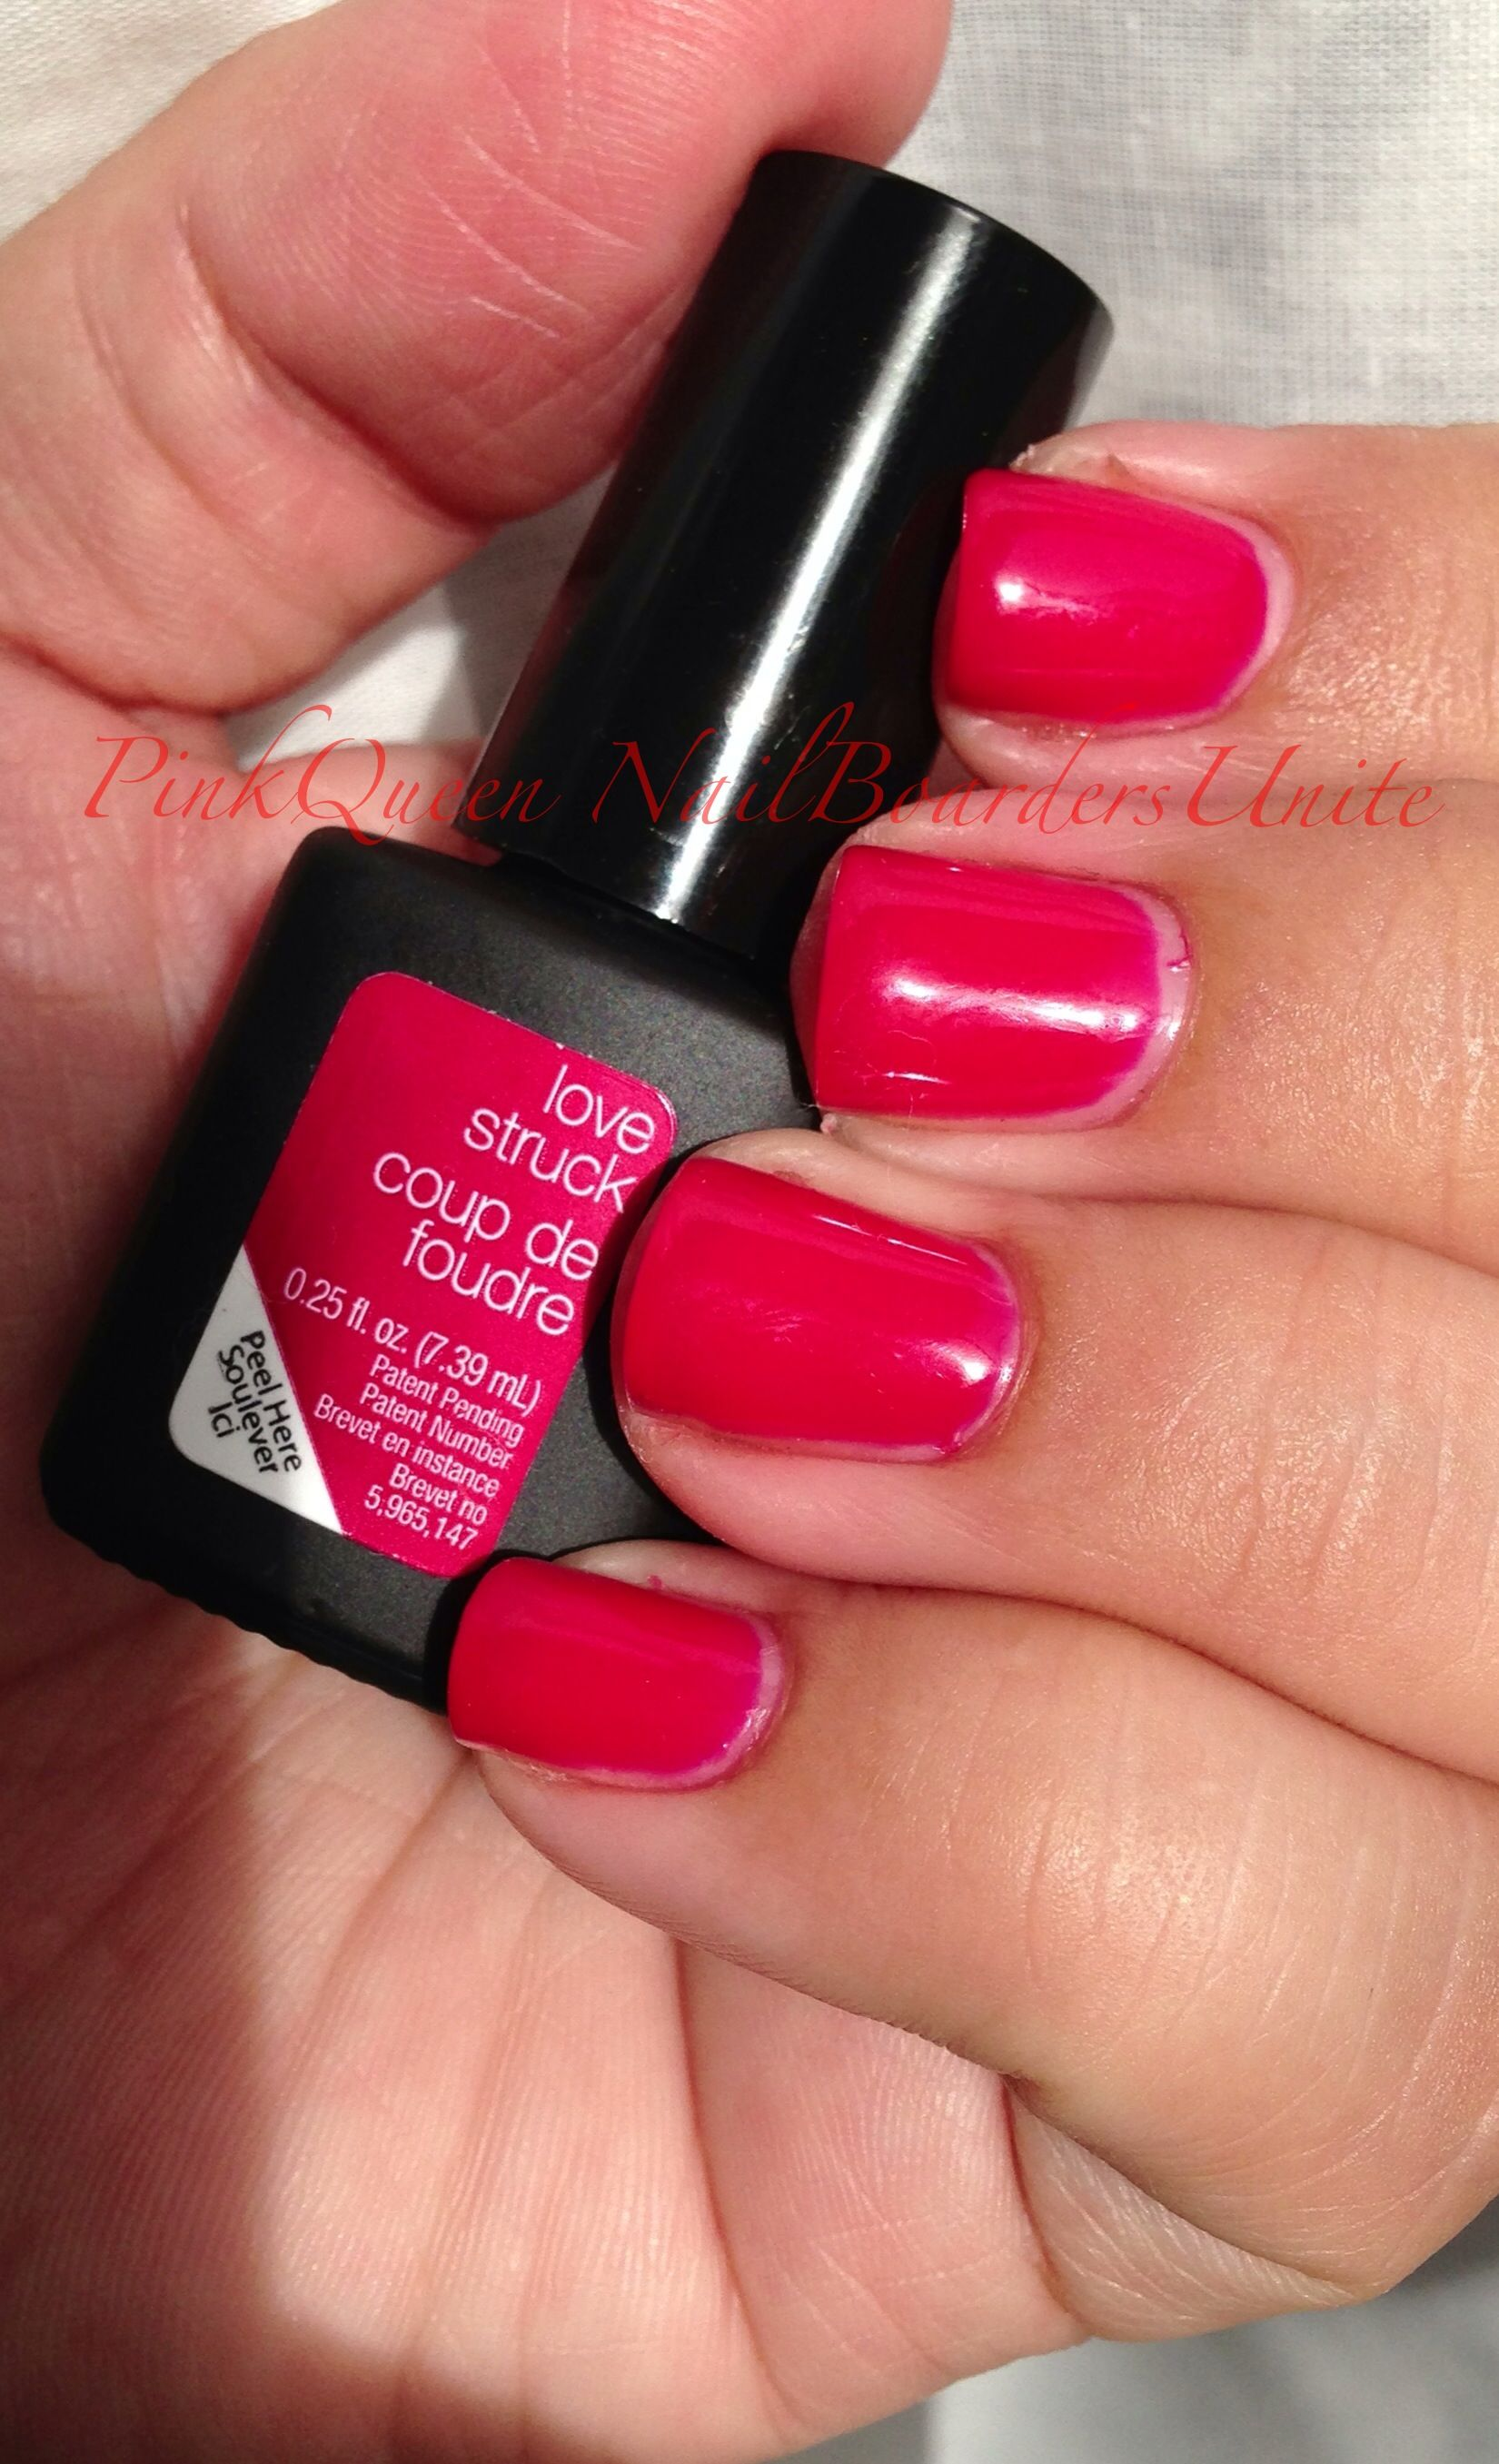 Sensationail Color Gel Nail Polish in Love Struck, Pink! | Nails ...